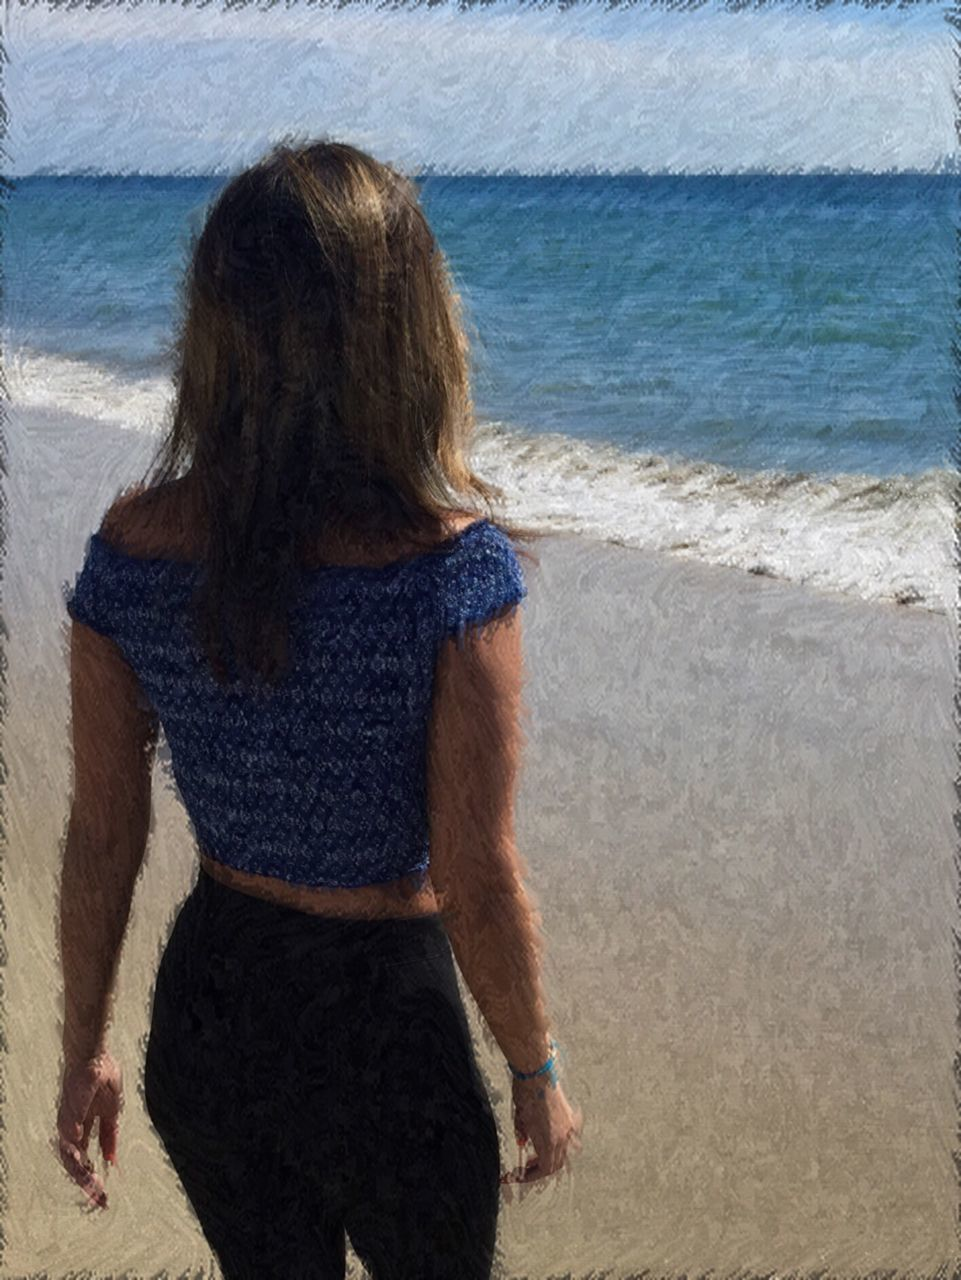 sea, beach, water, wave, rear view, shore, real people, sand, standing, one person, leisure activity, horizon over water, outdoors, day, nature, women, lifestyles, young adult, sky, people